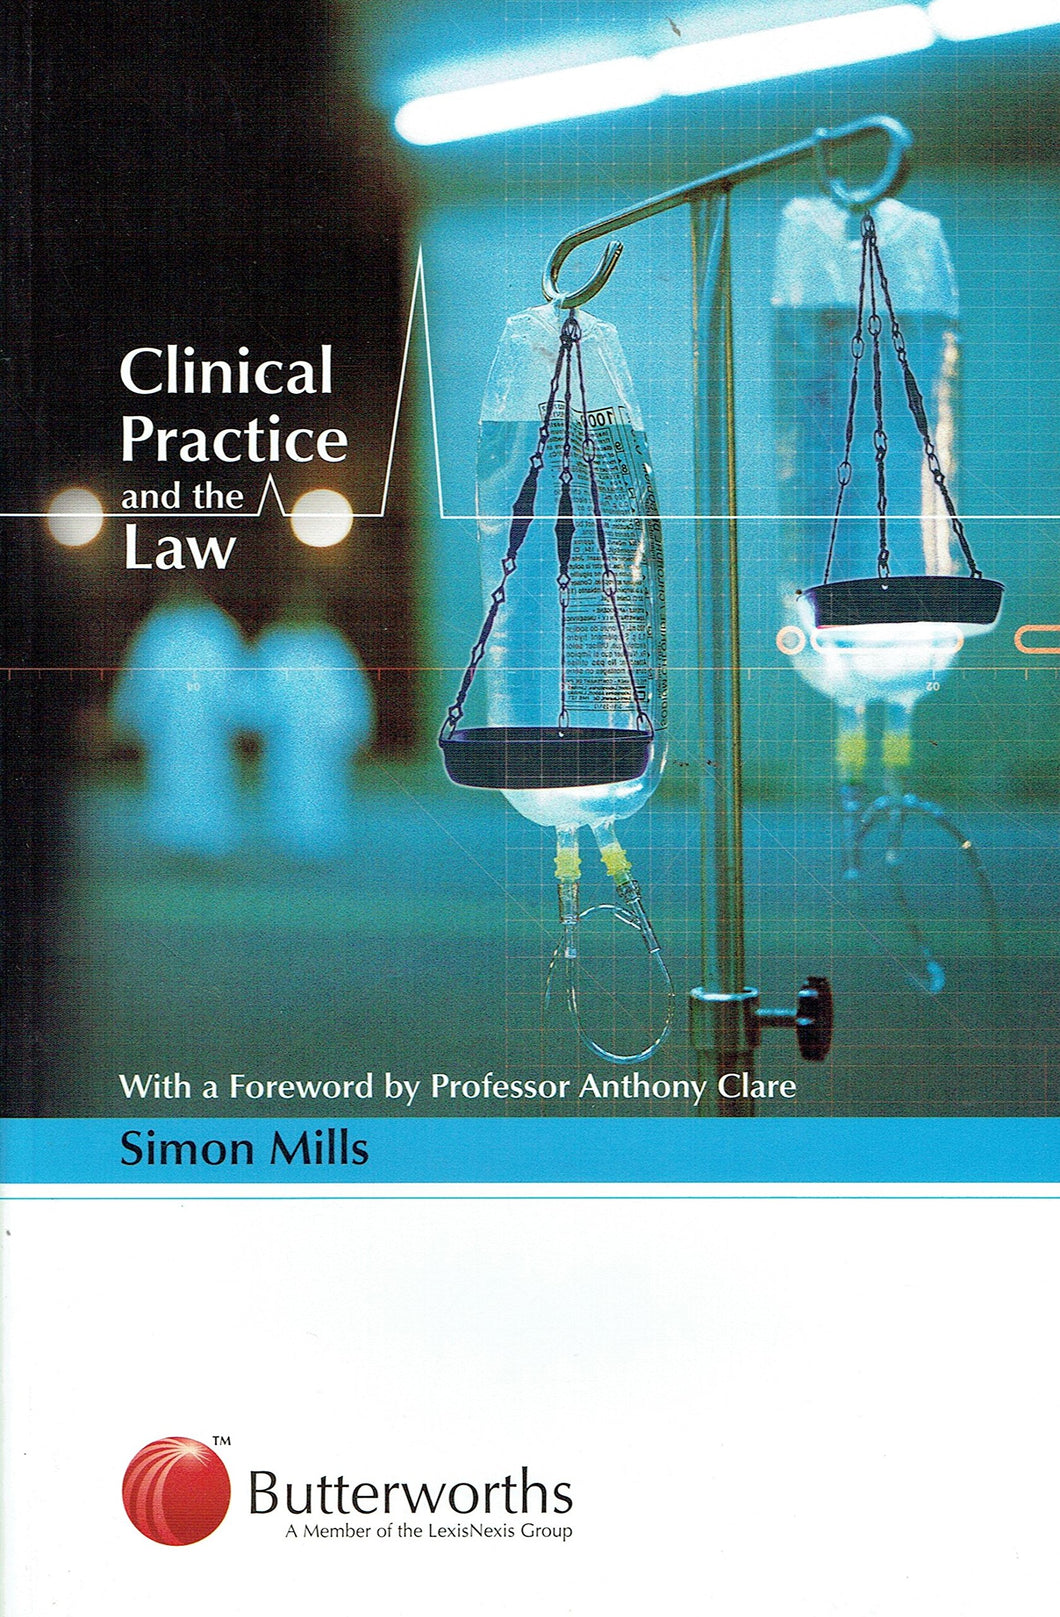 Clinical Practice and the Law